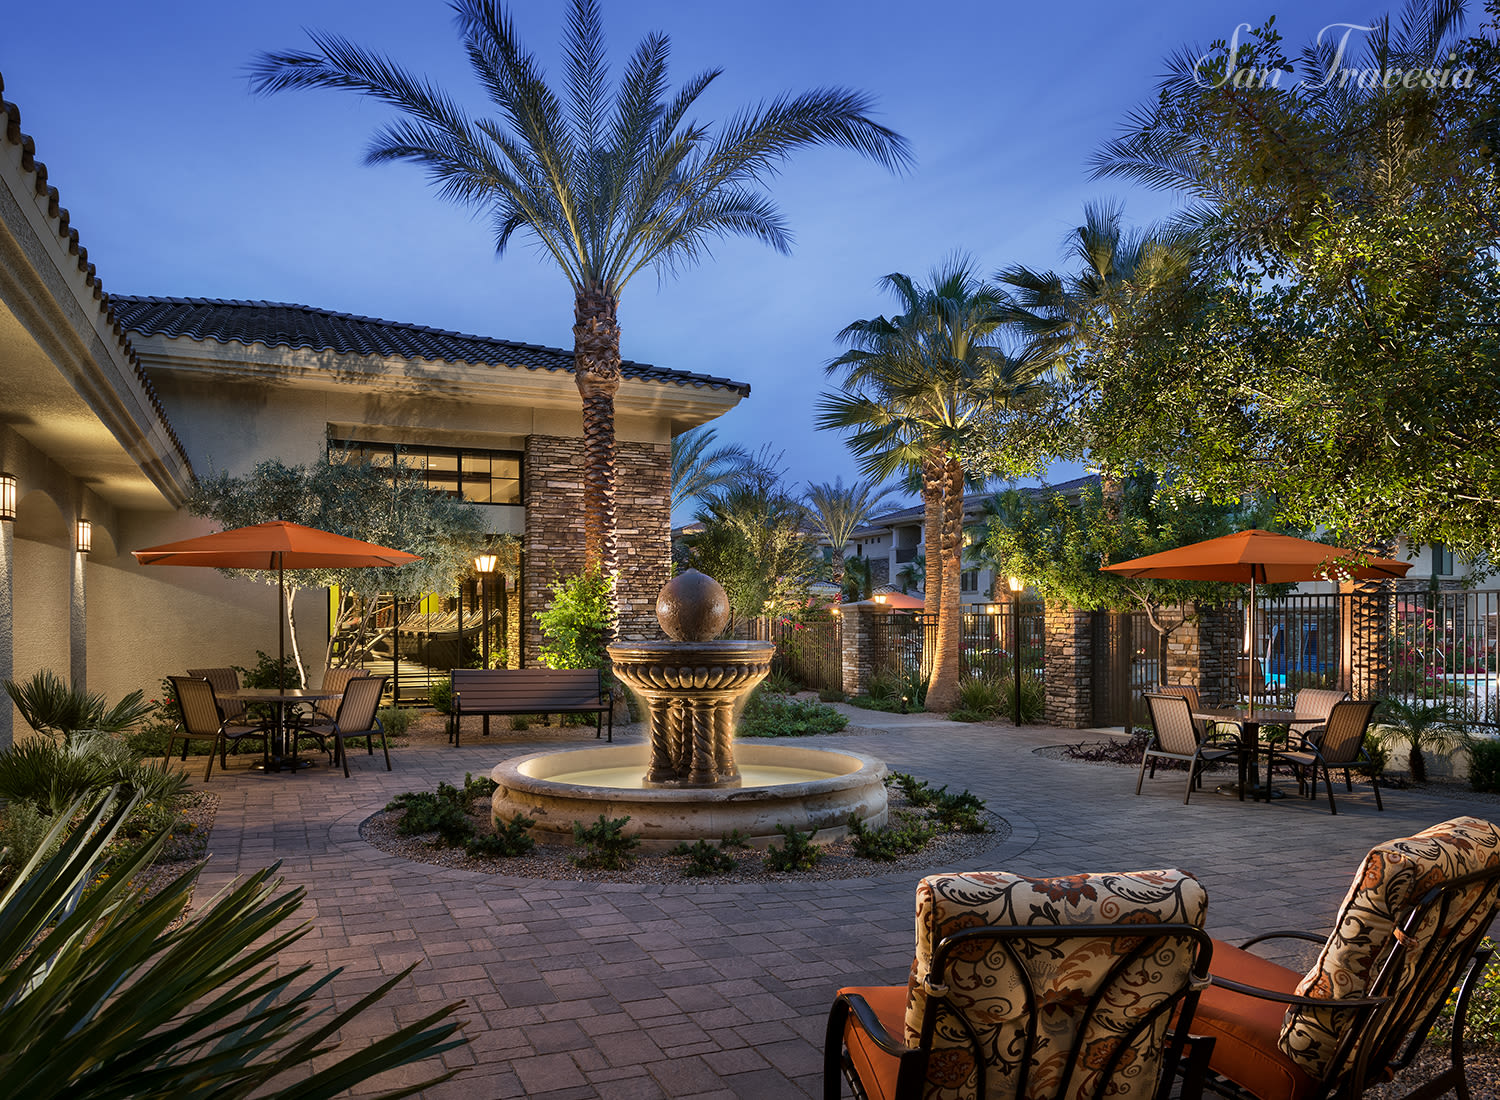 San Travesia apartments in Scottsdale, Arizona